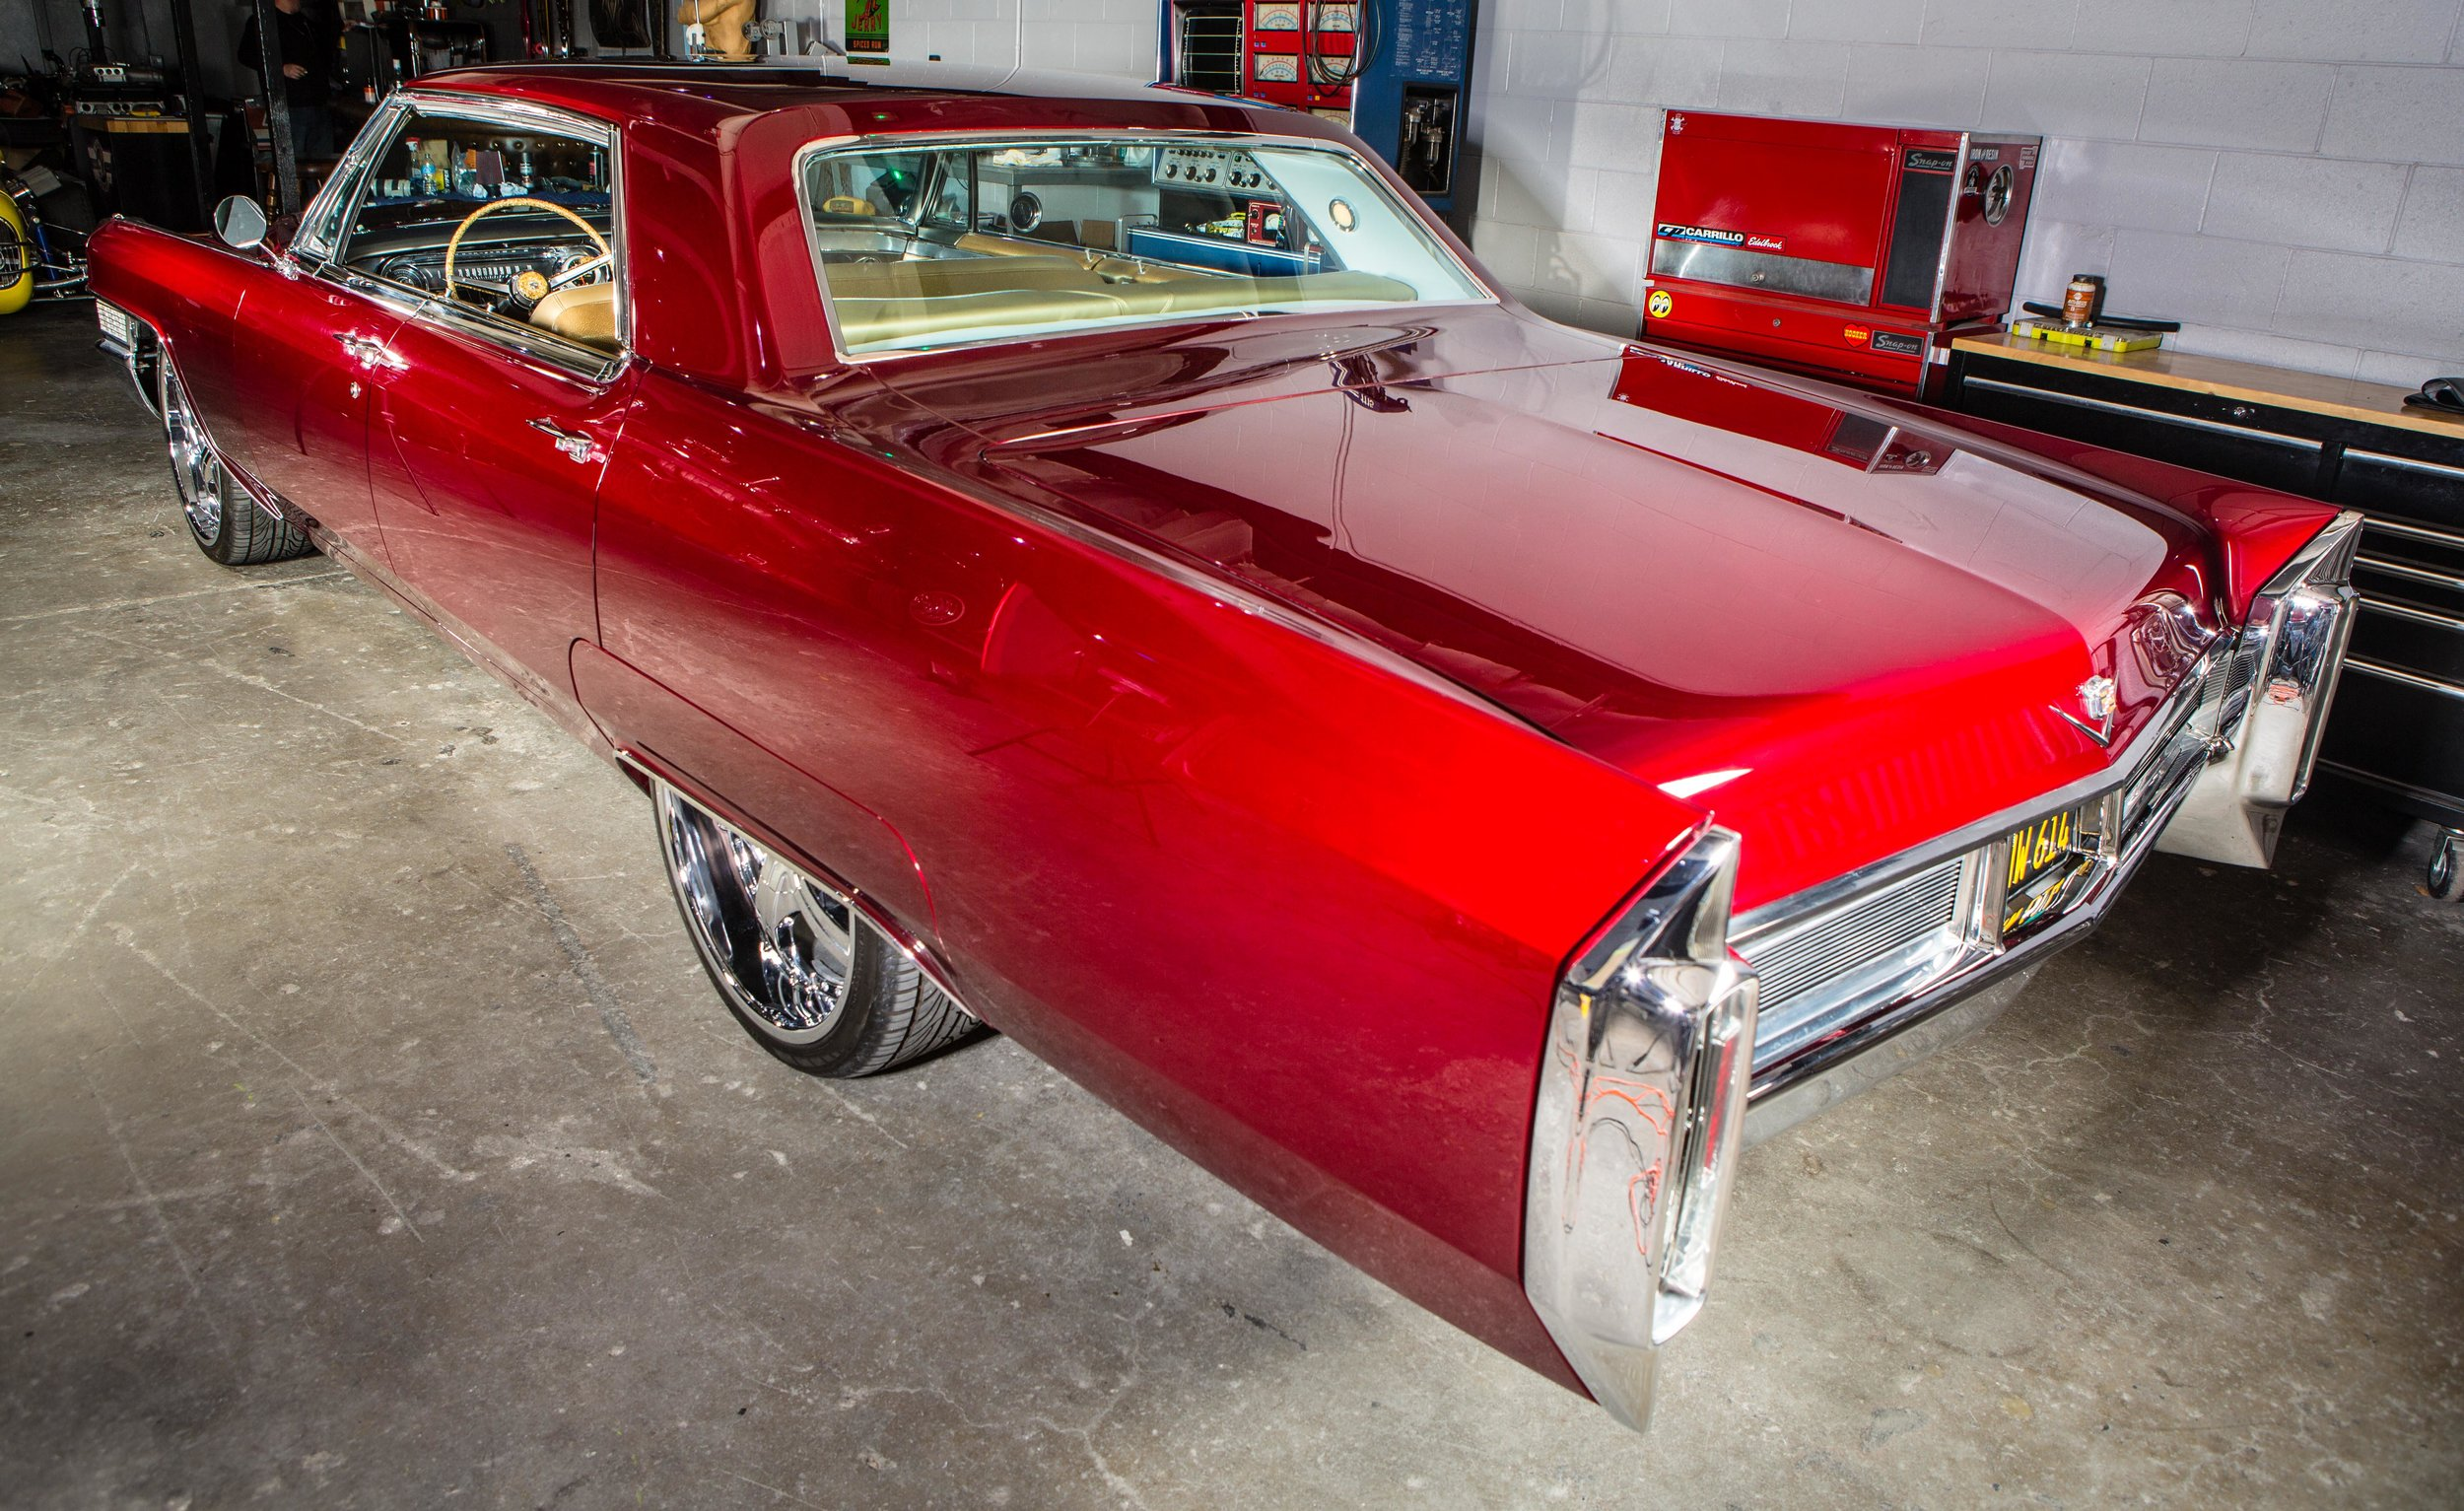 Anaheim Rod and Custom 65 Cadillac Studio Shots (60 of 69).jpg